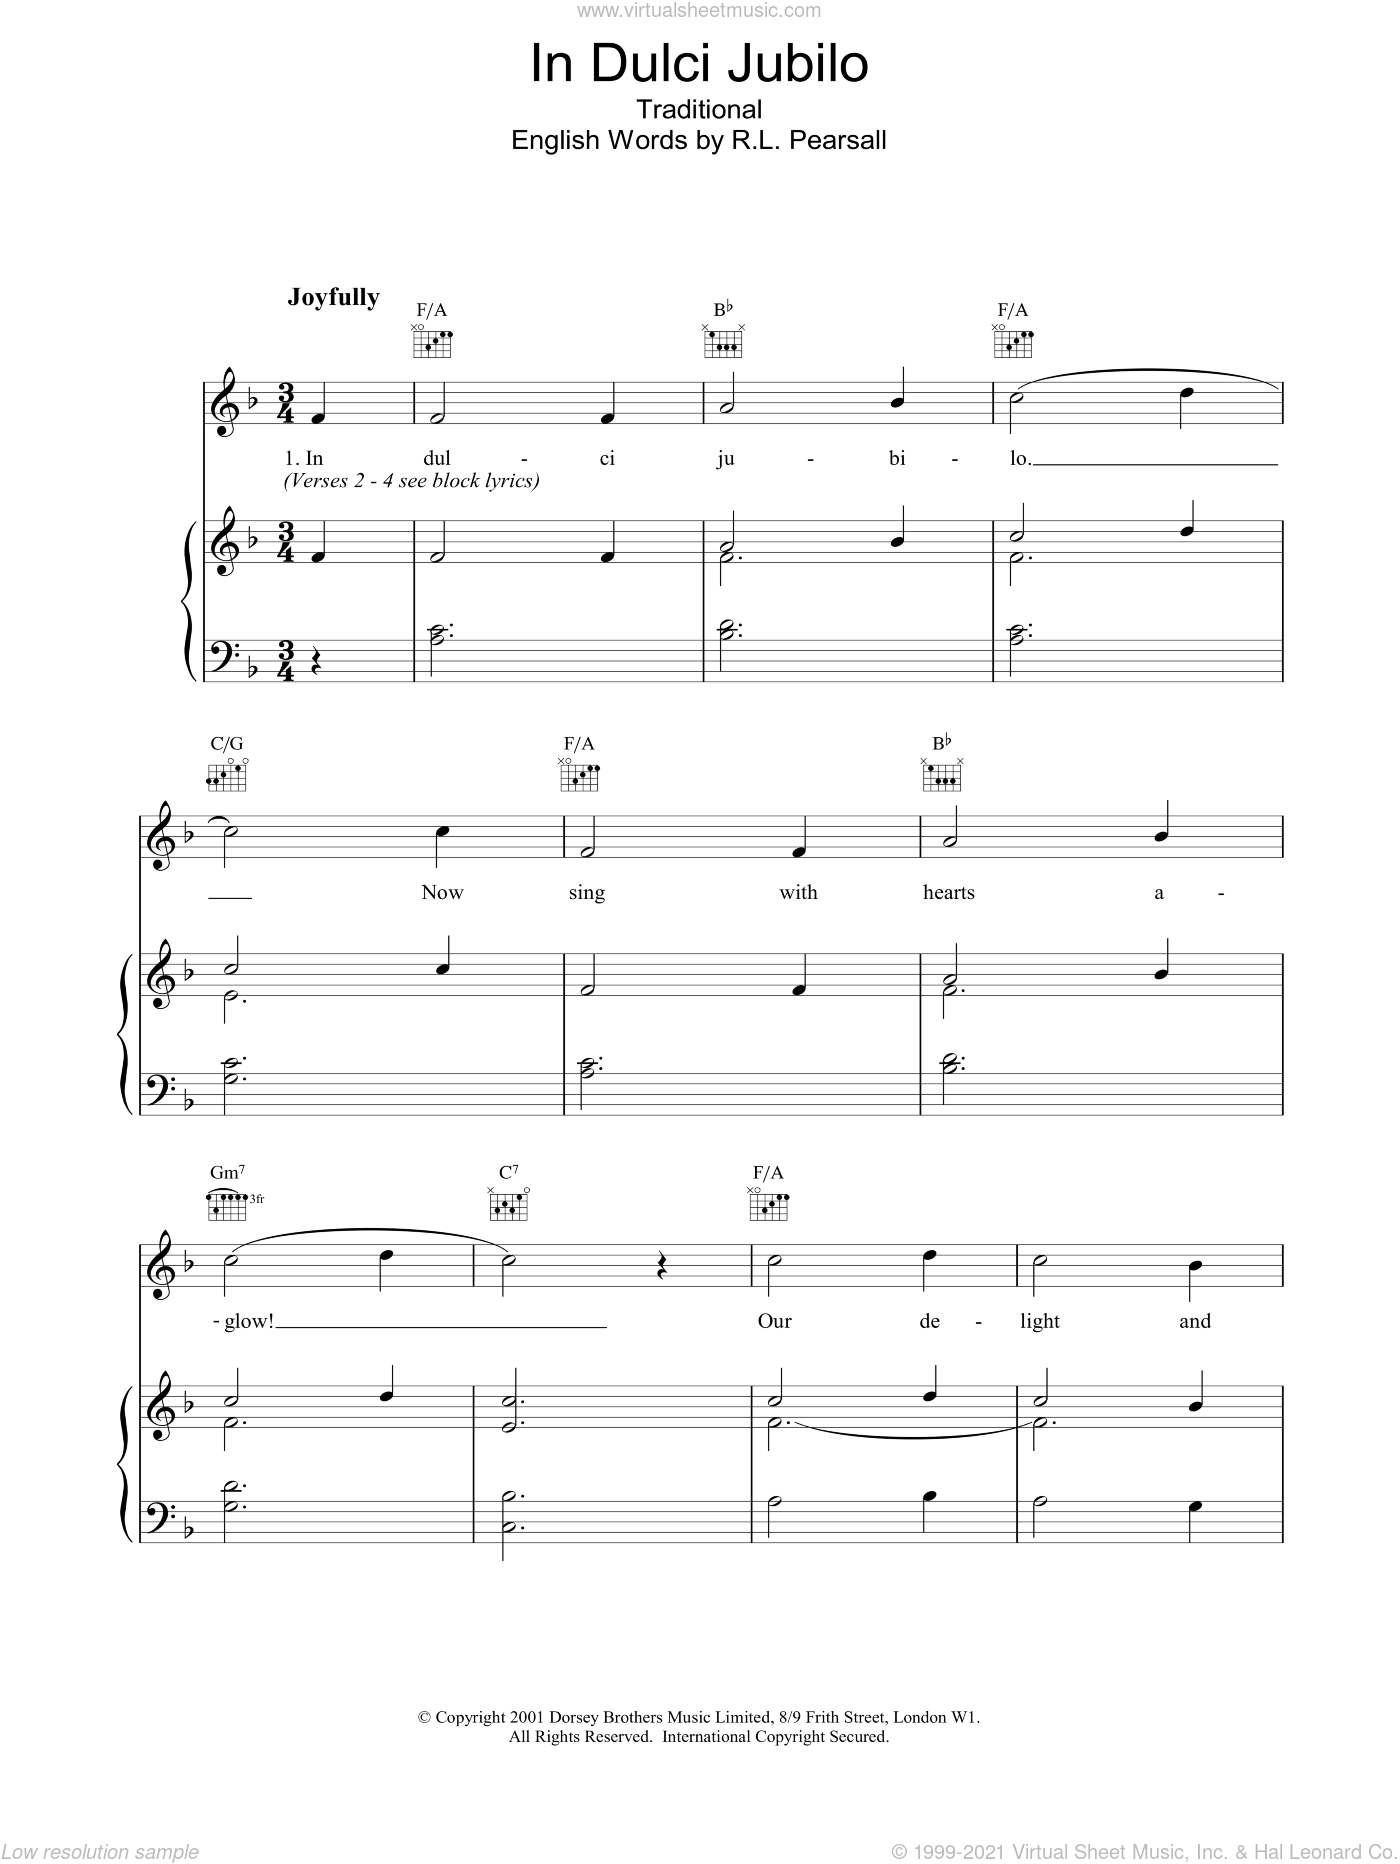 In Dulce Jubilo sheet music for voice, piano or guitar